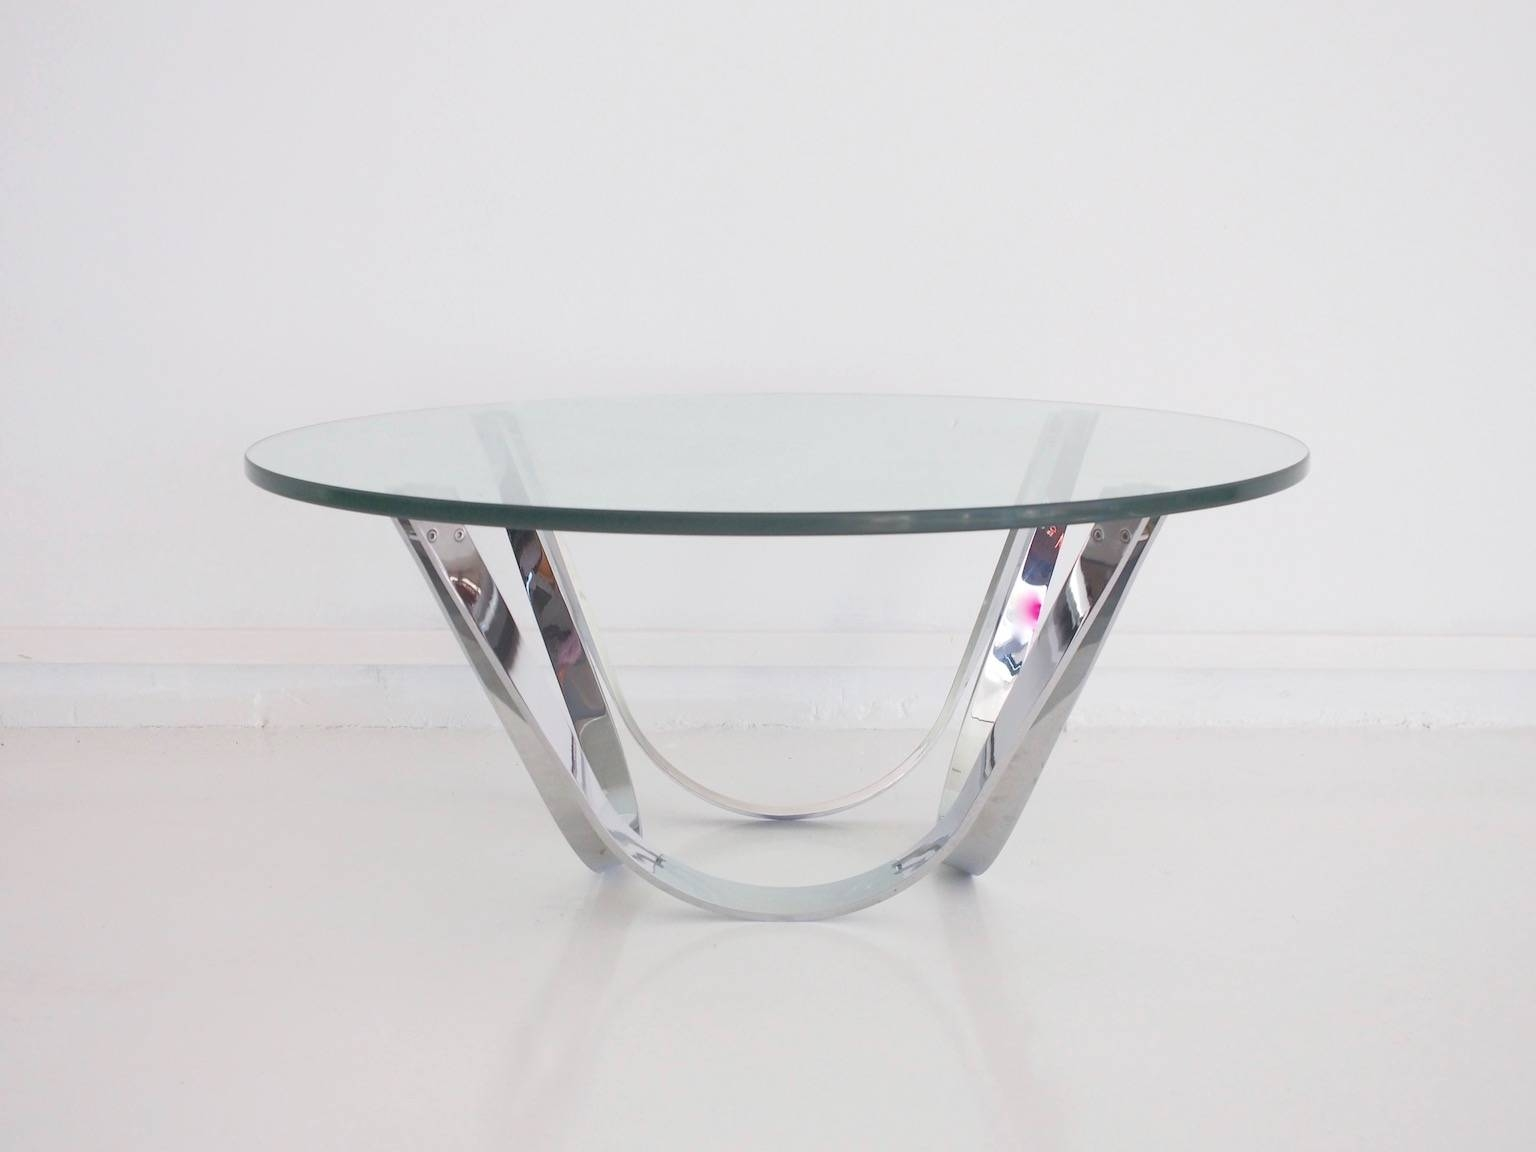 Vintage Chrome And Glass Coffee Tableroger Sprunger For Dunbar with Chrome and Glass Coffee Tables (Image 26 of 30)